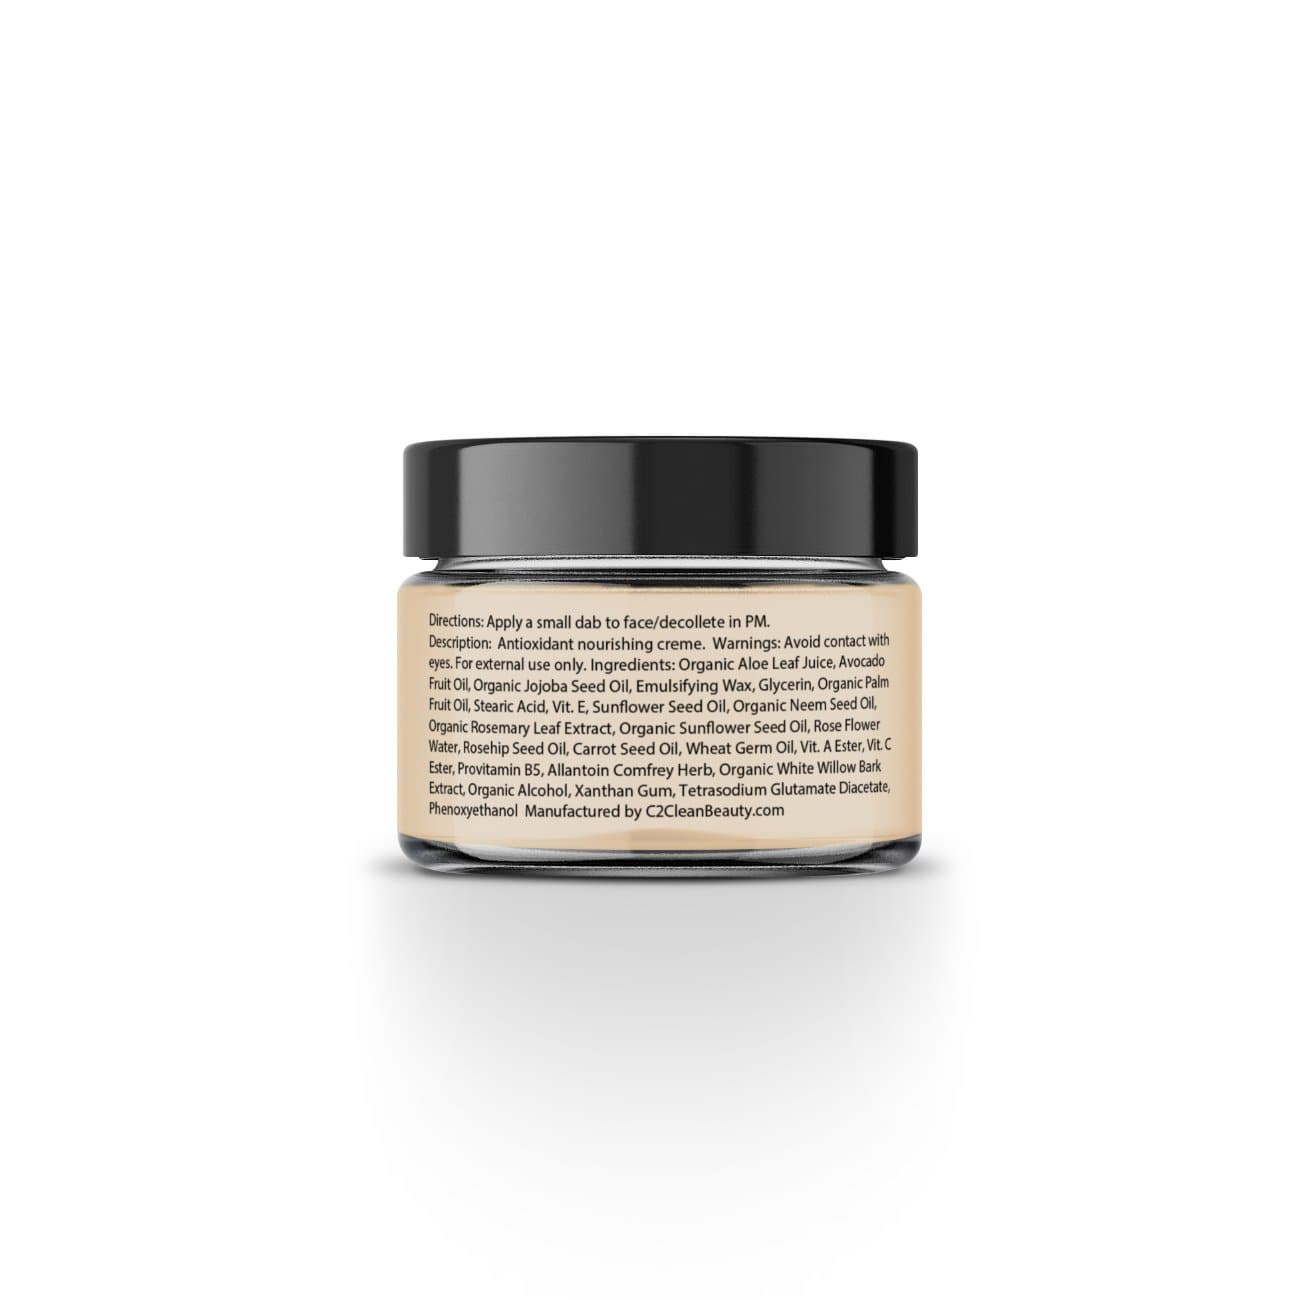 New Antioxidant Night Creme